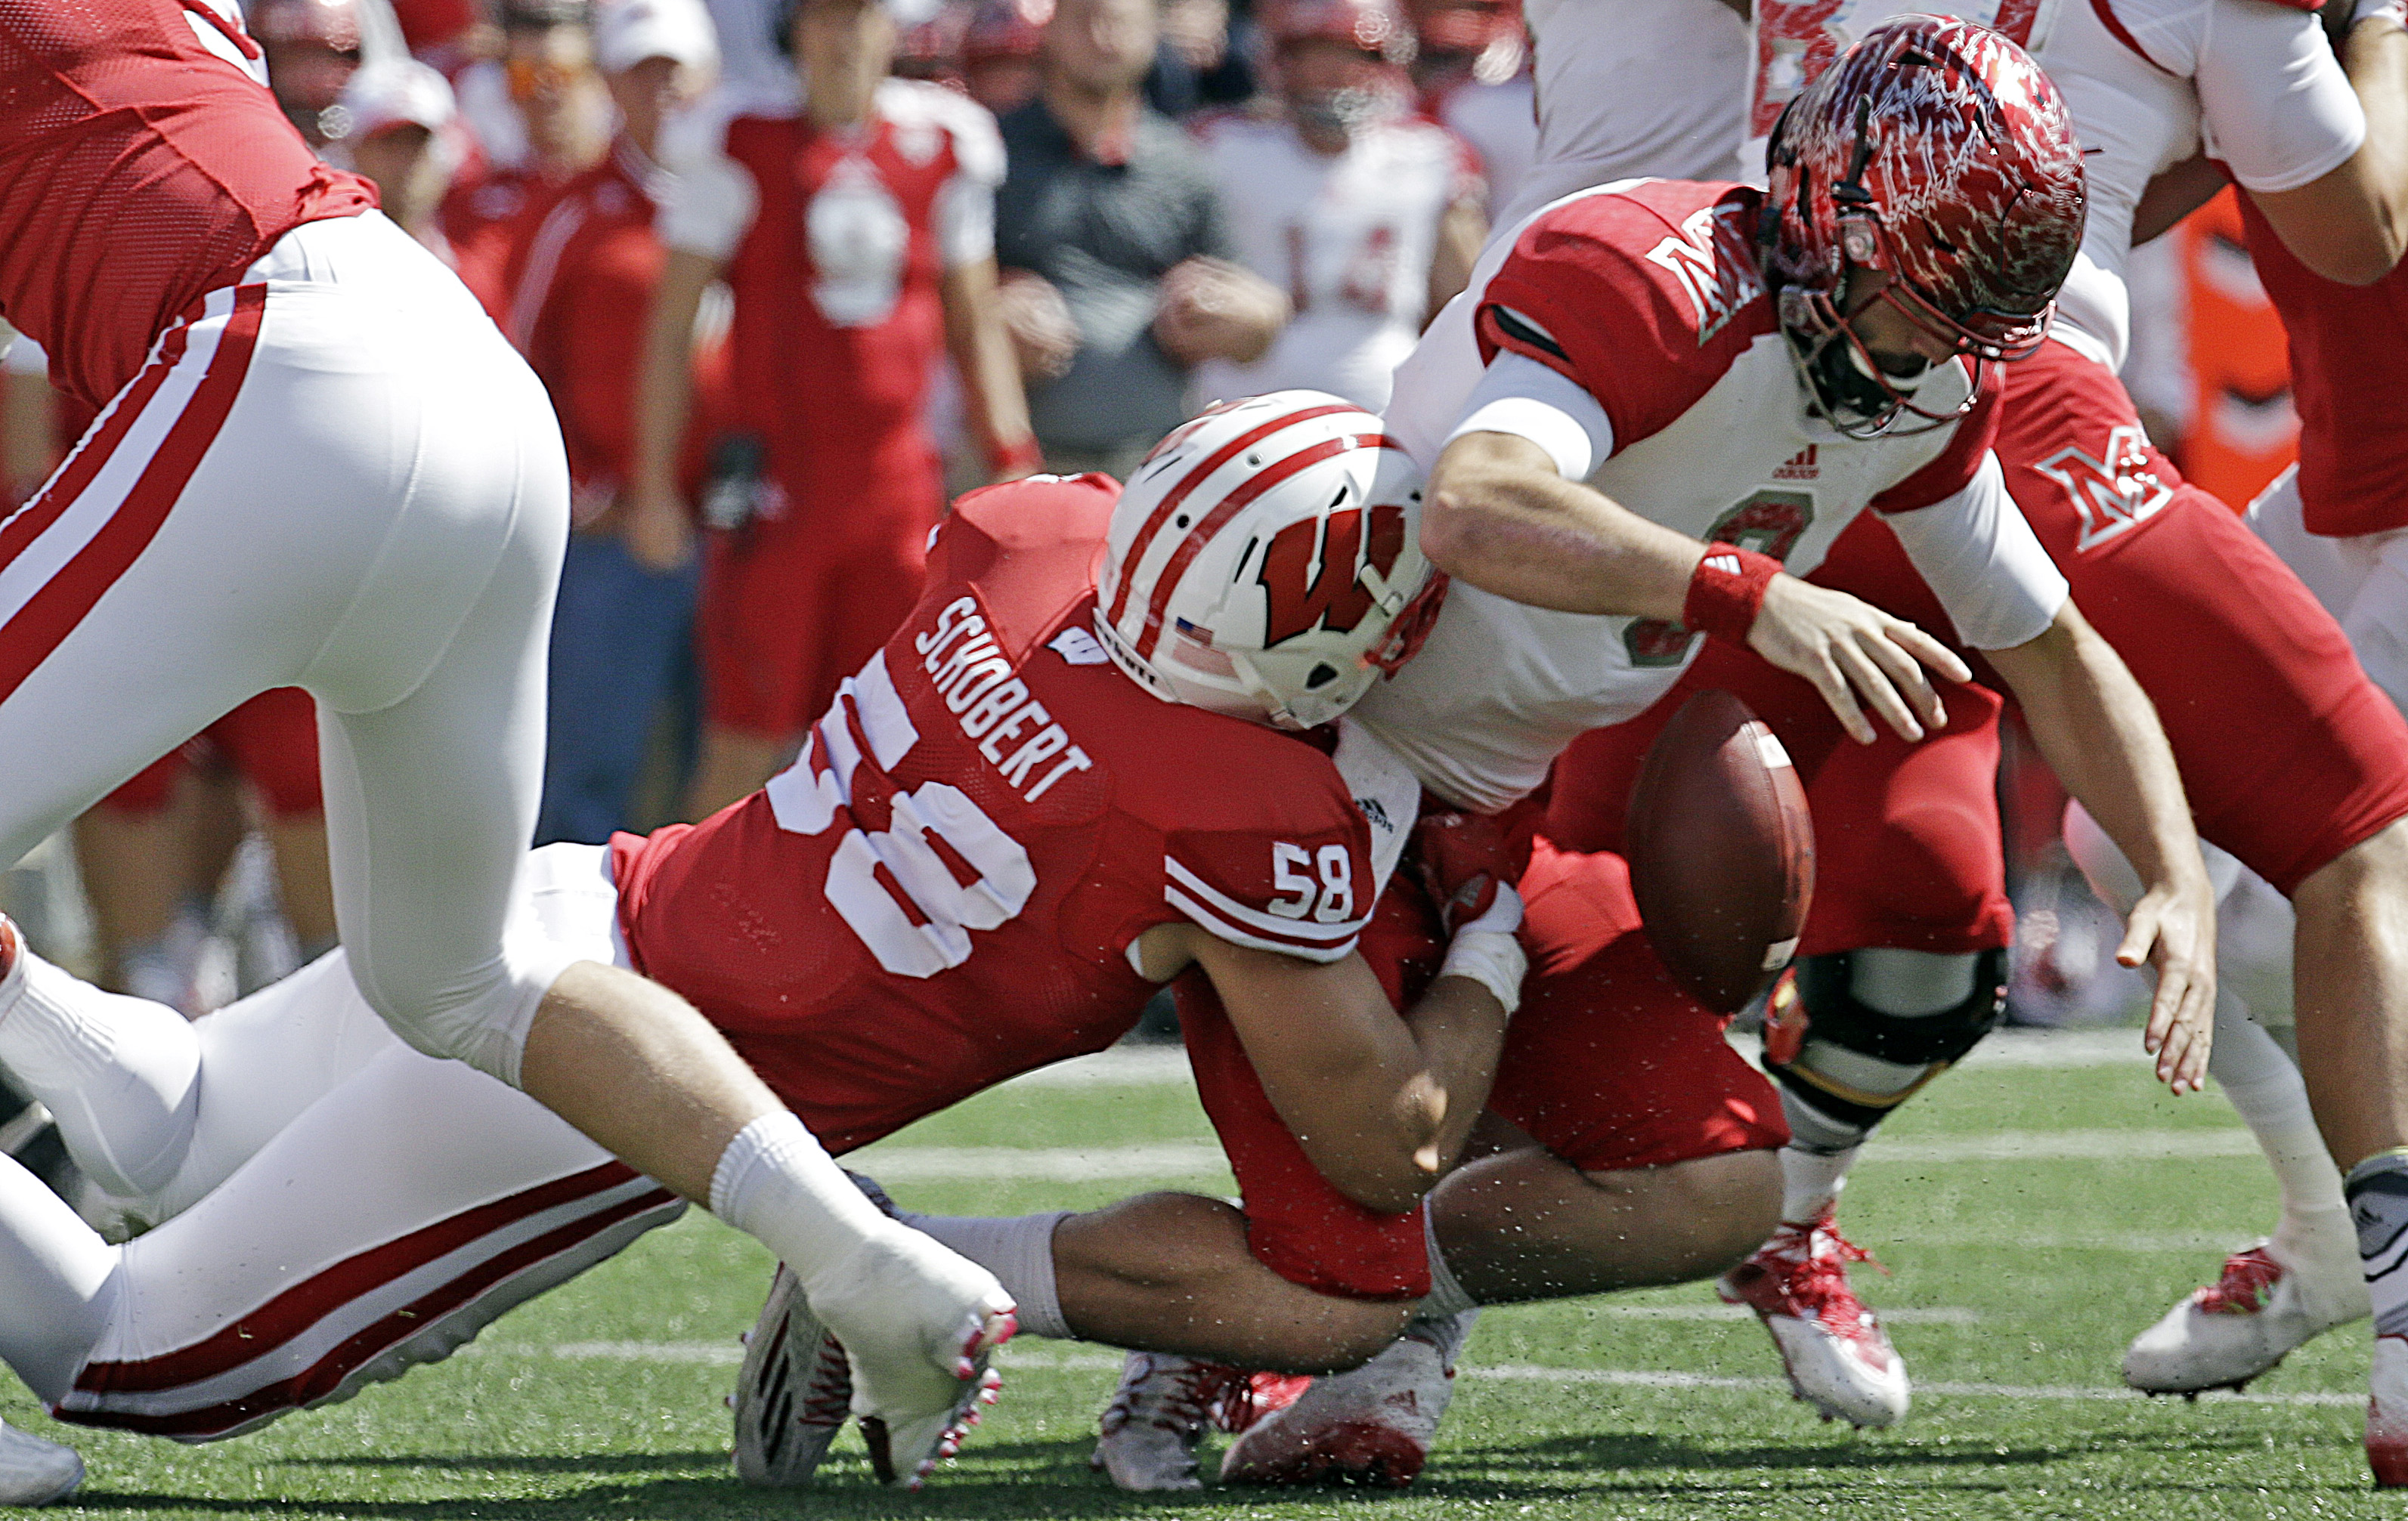 FILE - In this Sept. 12, 2015, file photo, Miami of Ohio quarterback Drew Kummer fumbles the ball as he is sacked by Wisconsin's Joe Schobert (58) during the second half of an NCAA college football game in Madison, Wis. Vince Biegel is high energy. Joe Sc